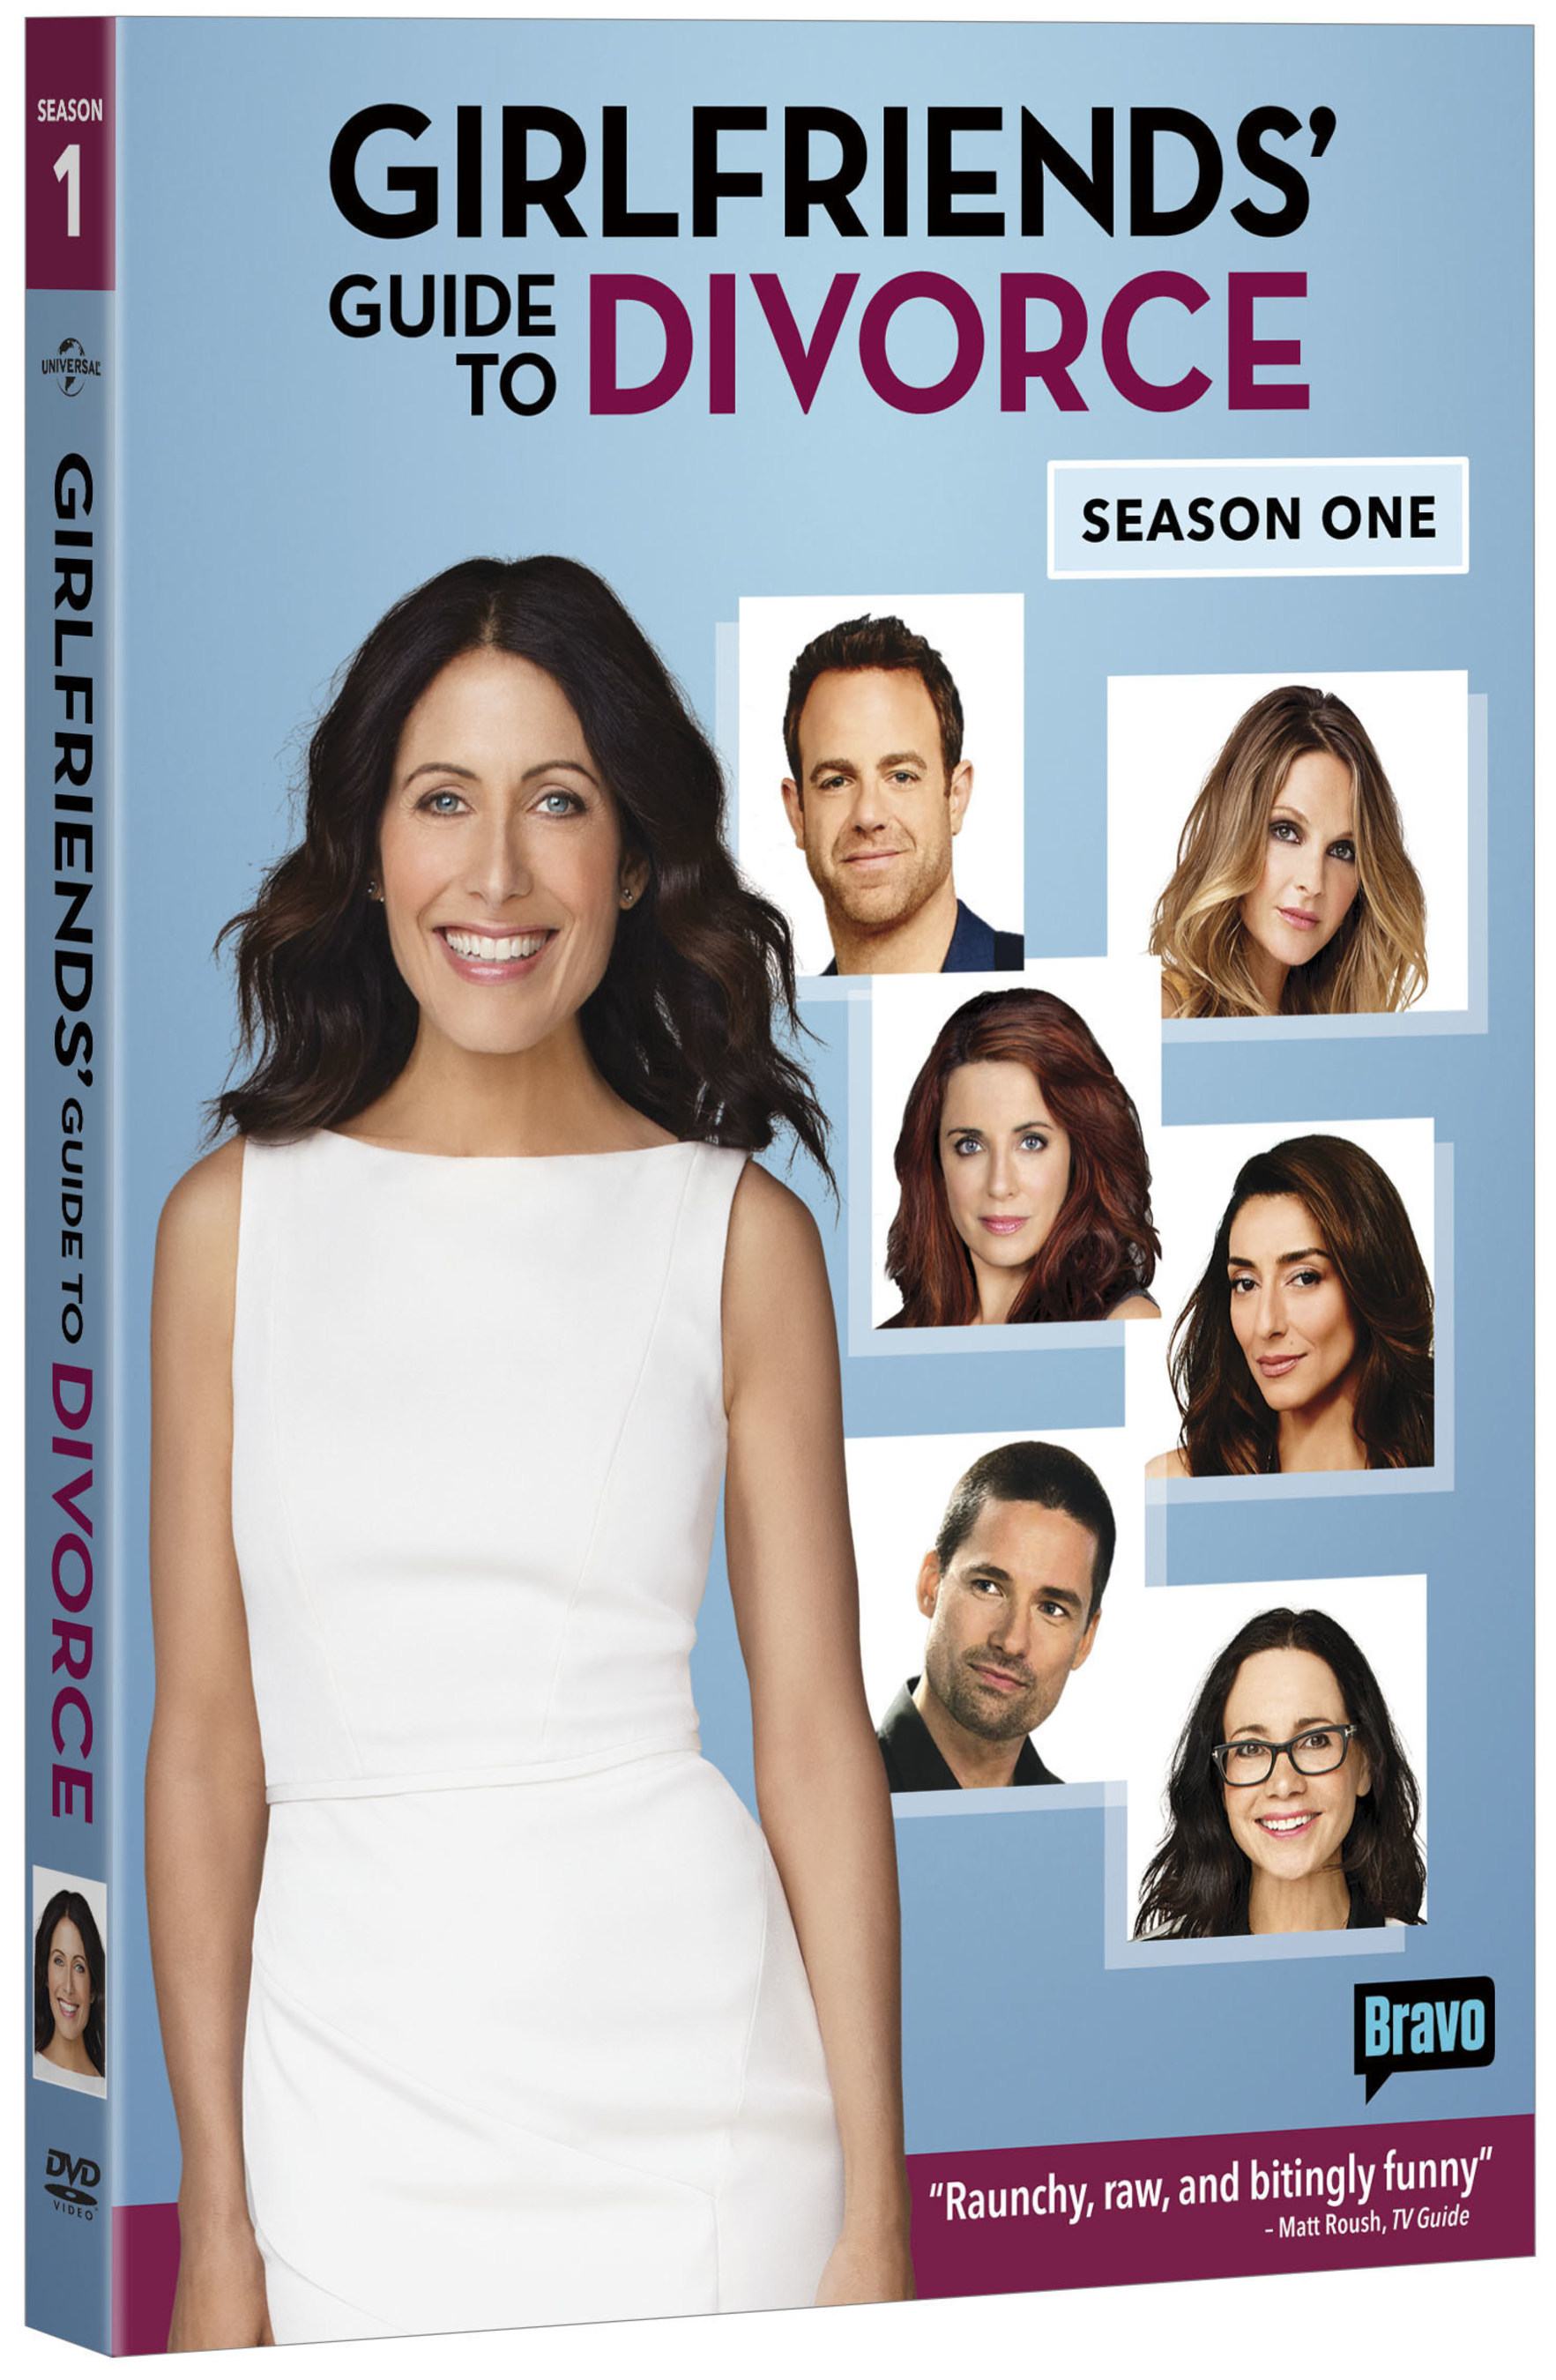 From Universal Pictures Home Entertainment: Girlfriends' Guide To Divorce: Season One